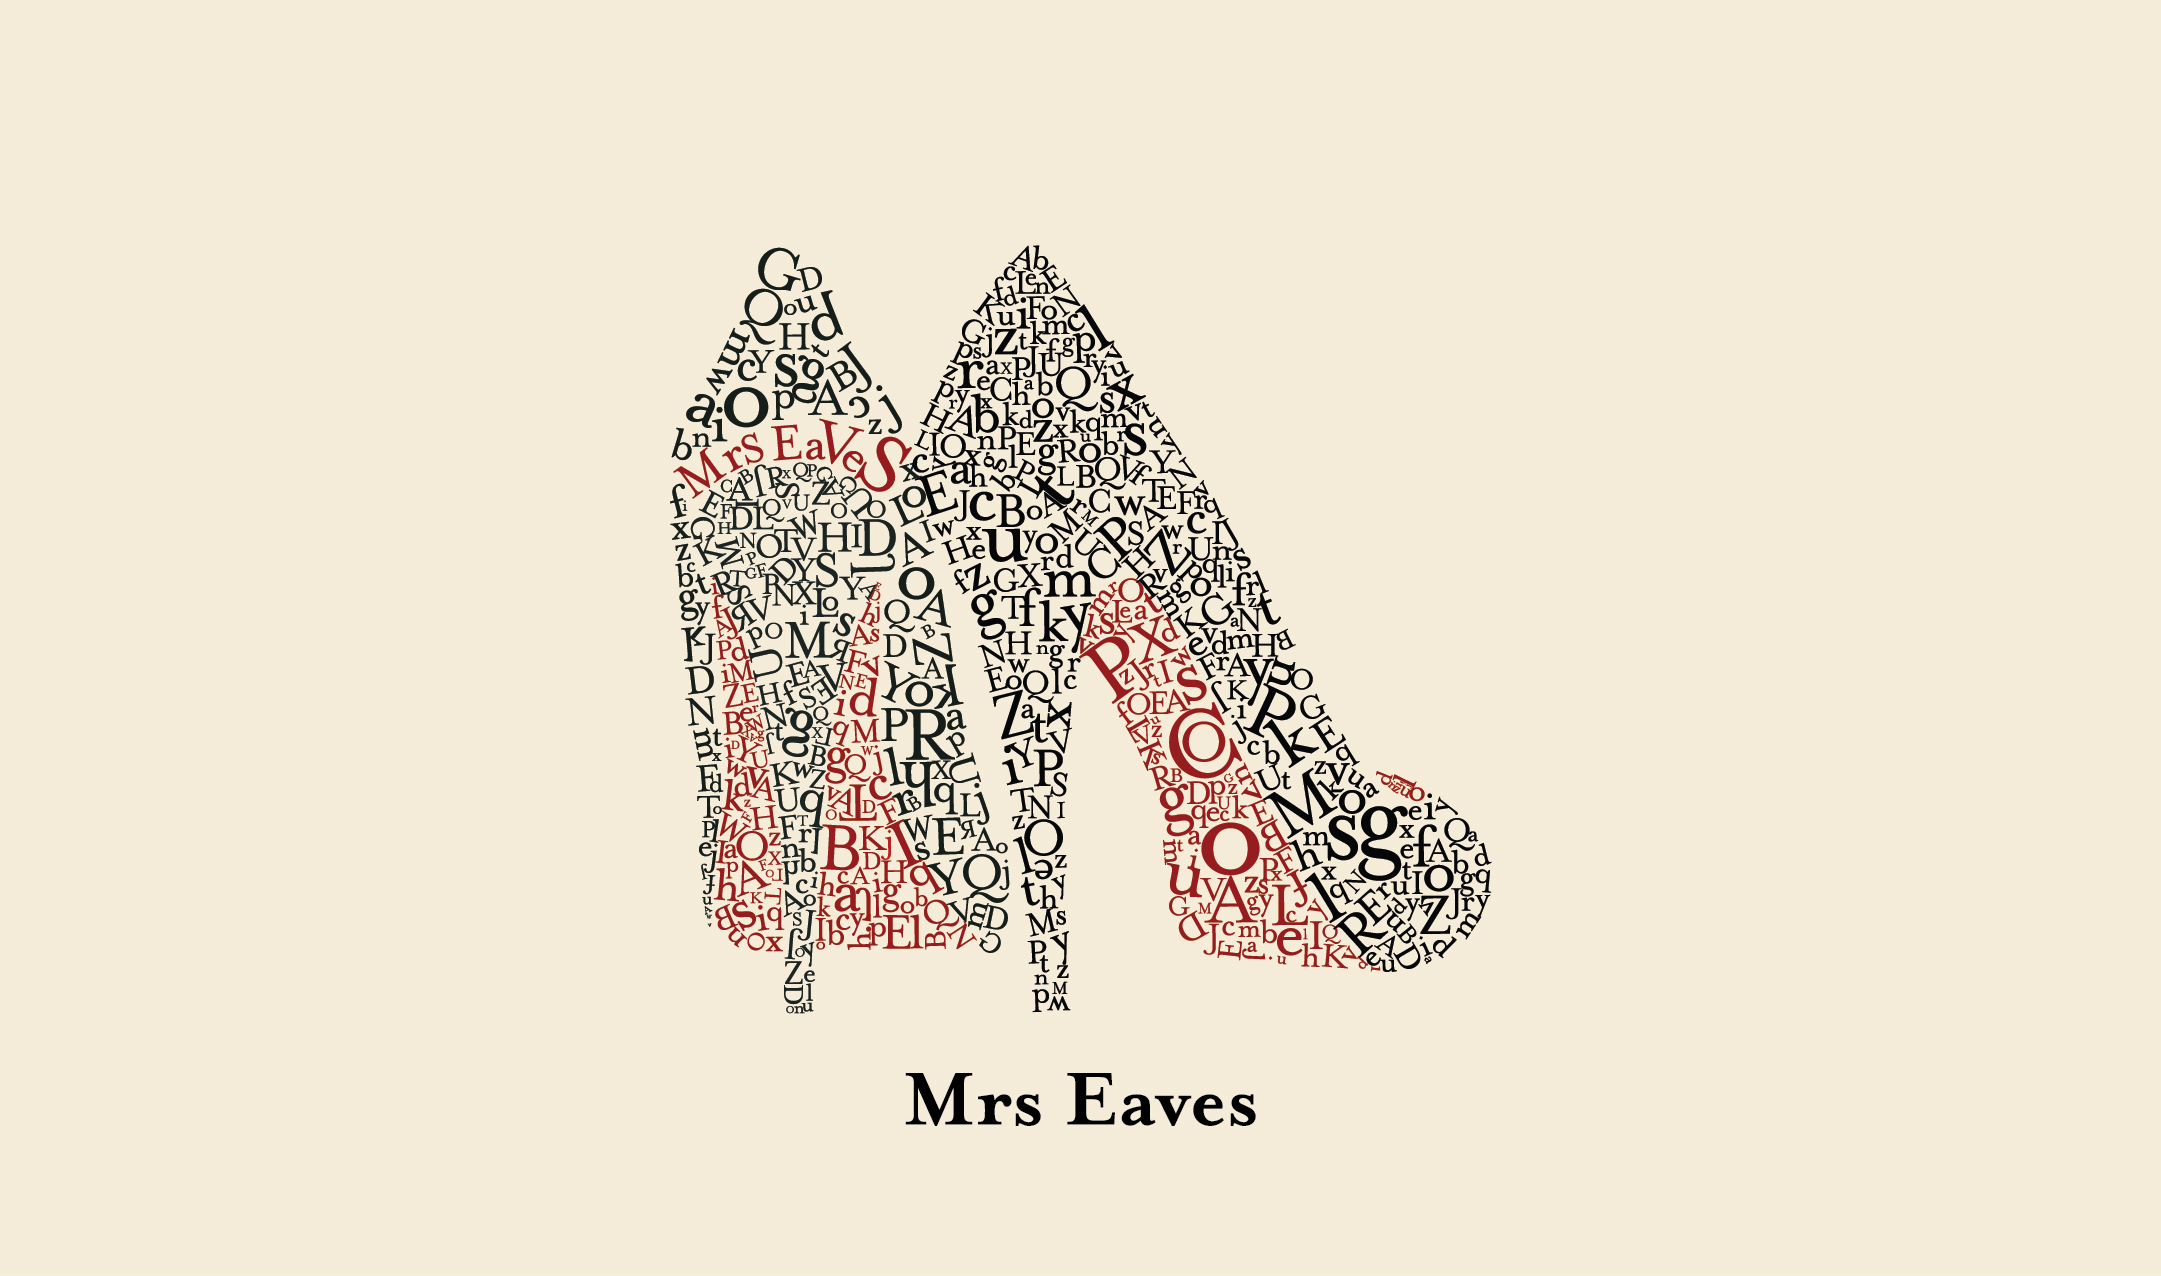 Mrs Eaves, Type Specimen